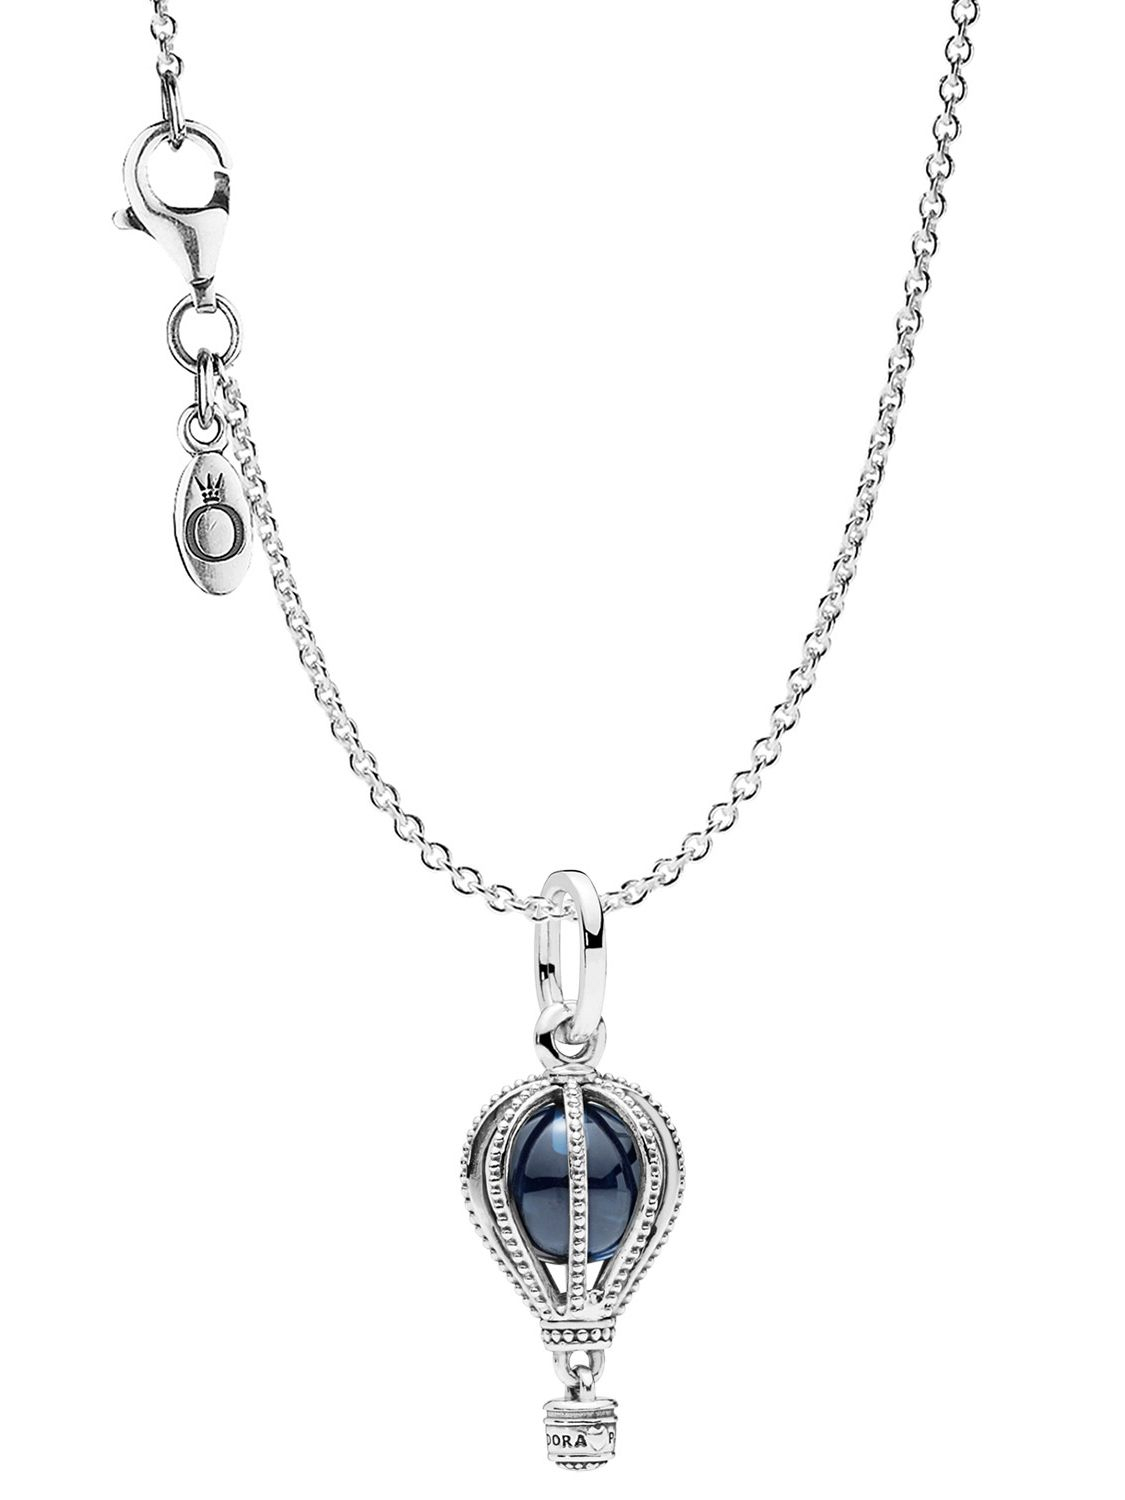 Pandora 75250 Necklace With Pendant Hot Air Balloon Silver 925 Throughout Recent Heart Of Winter Necklaces (View 11 of 25)